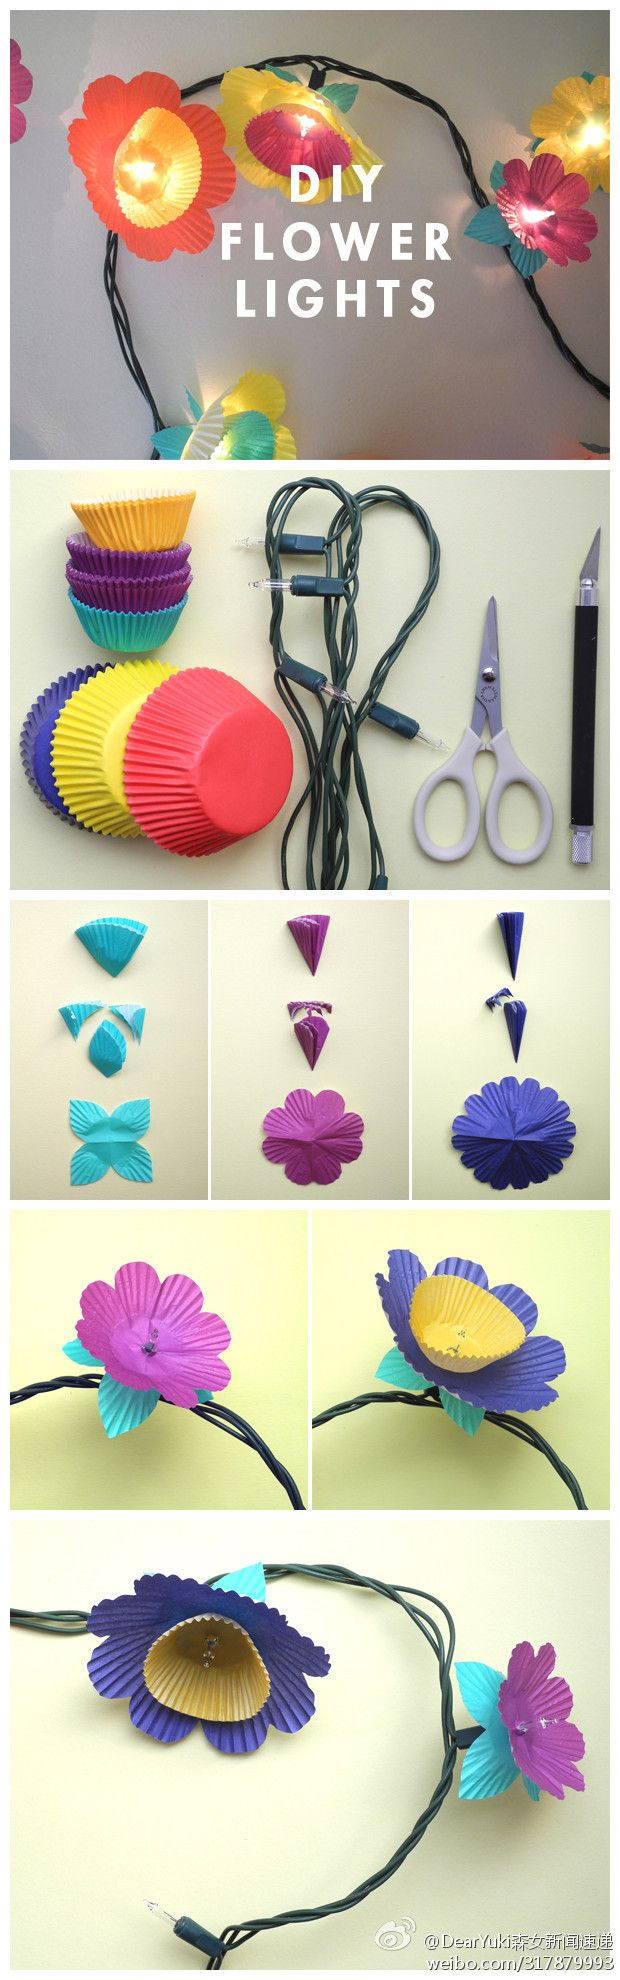 DIY flower lights. If i could put up lights in my dorm i would do this :/